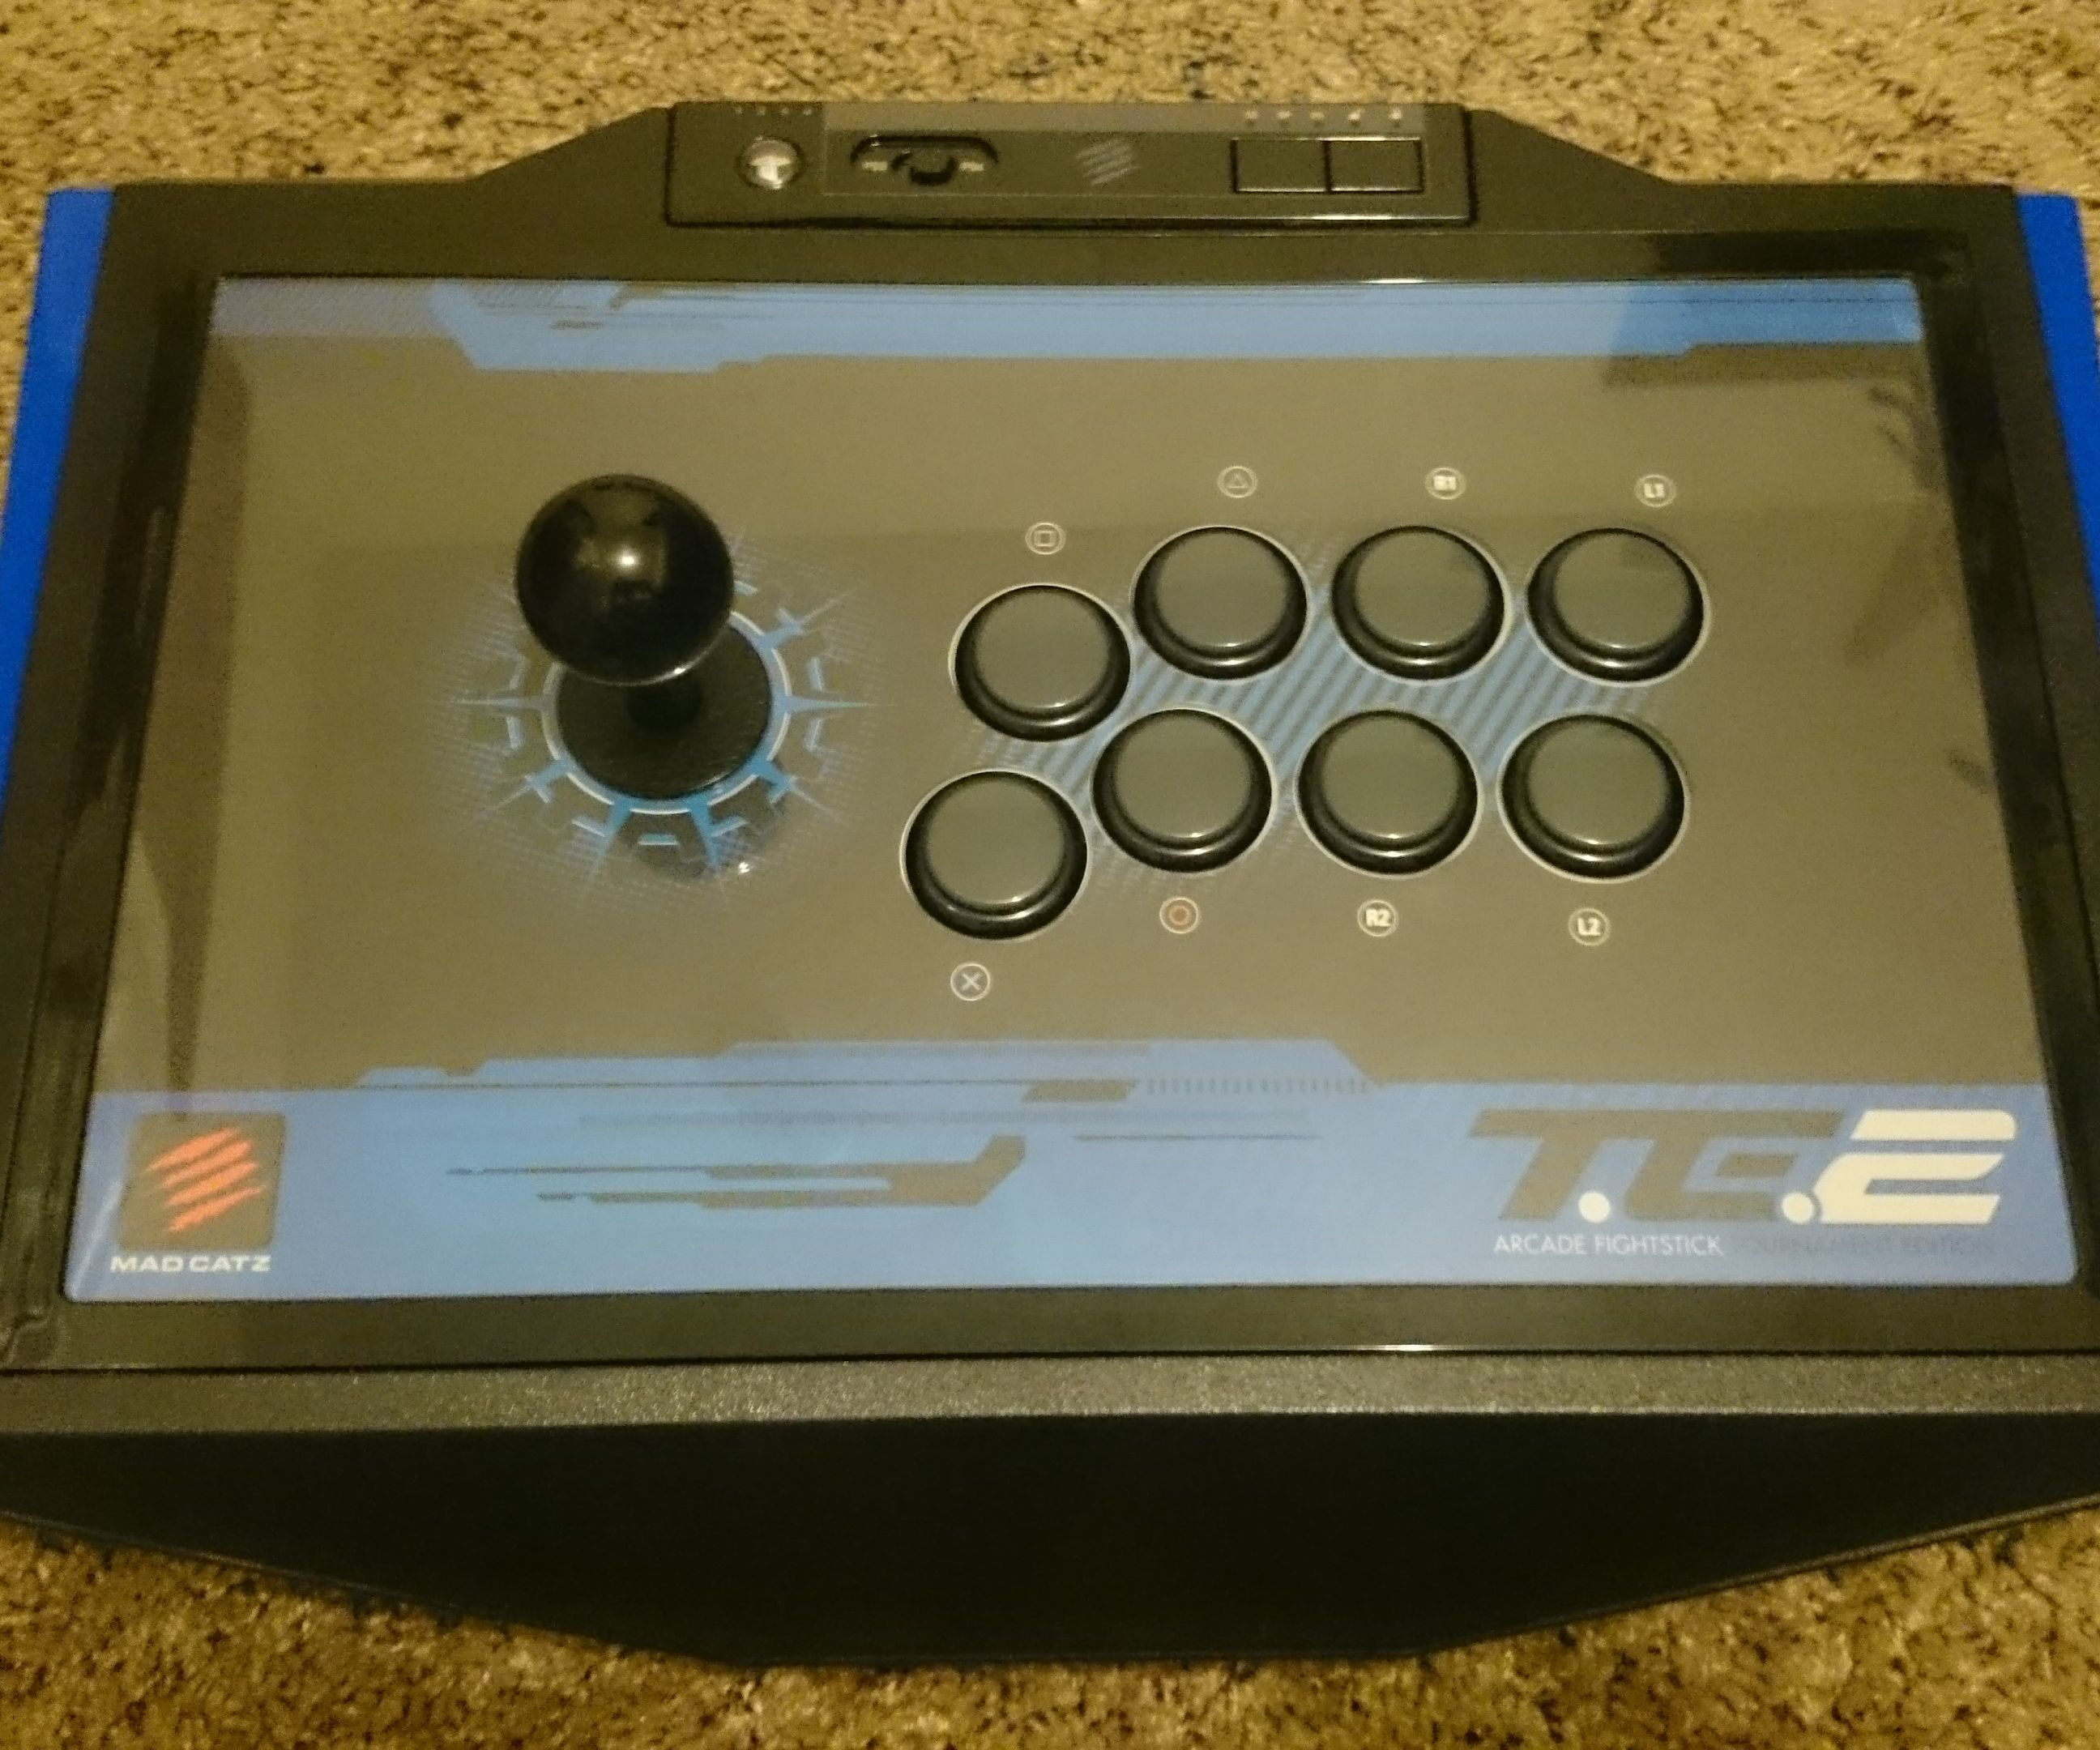 How to Customize an Arcade Stick: 5 Steps (with Pictures)